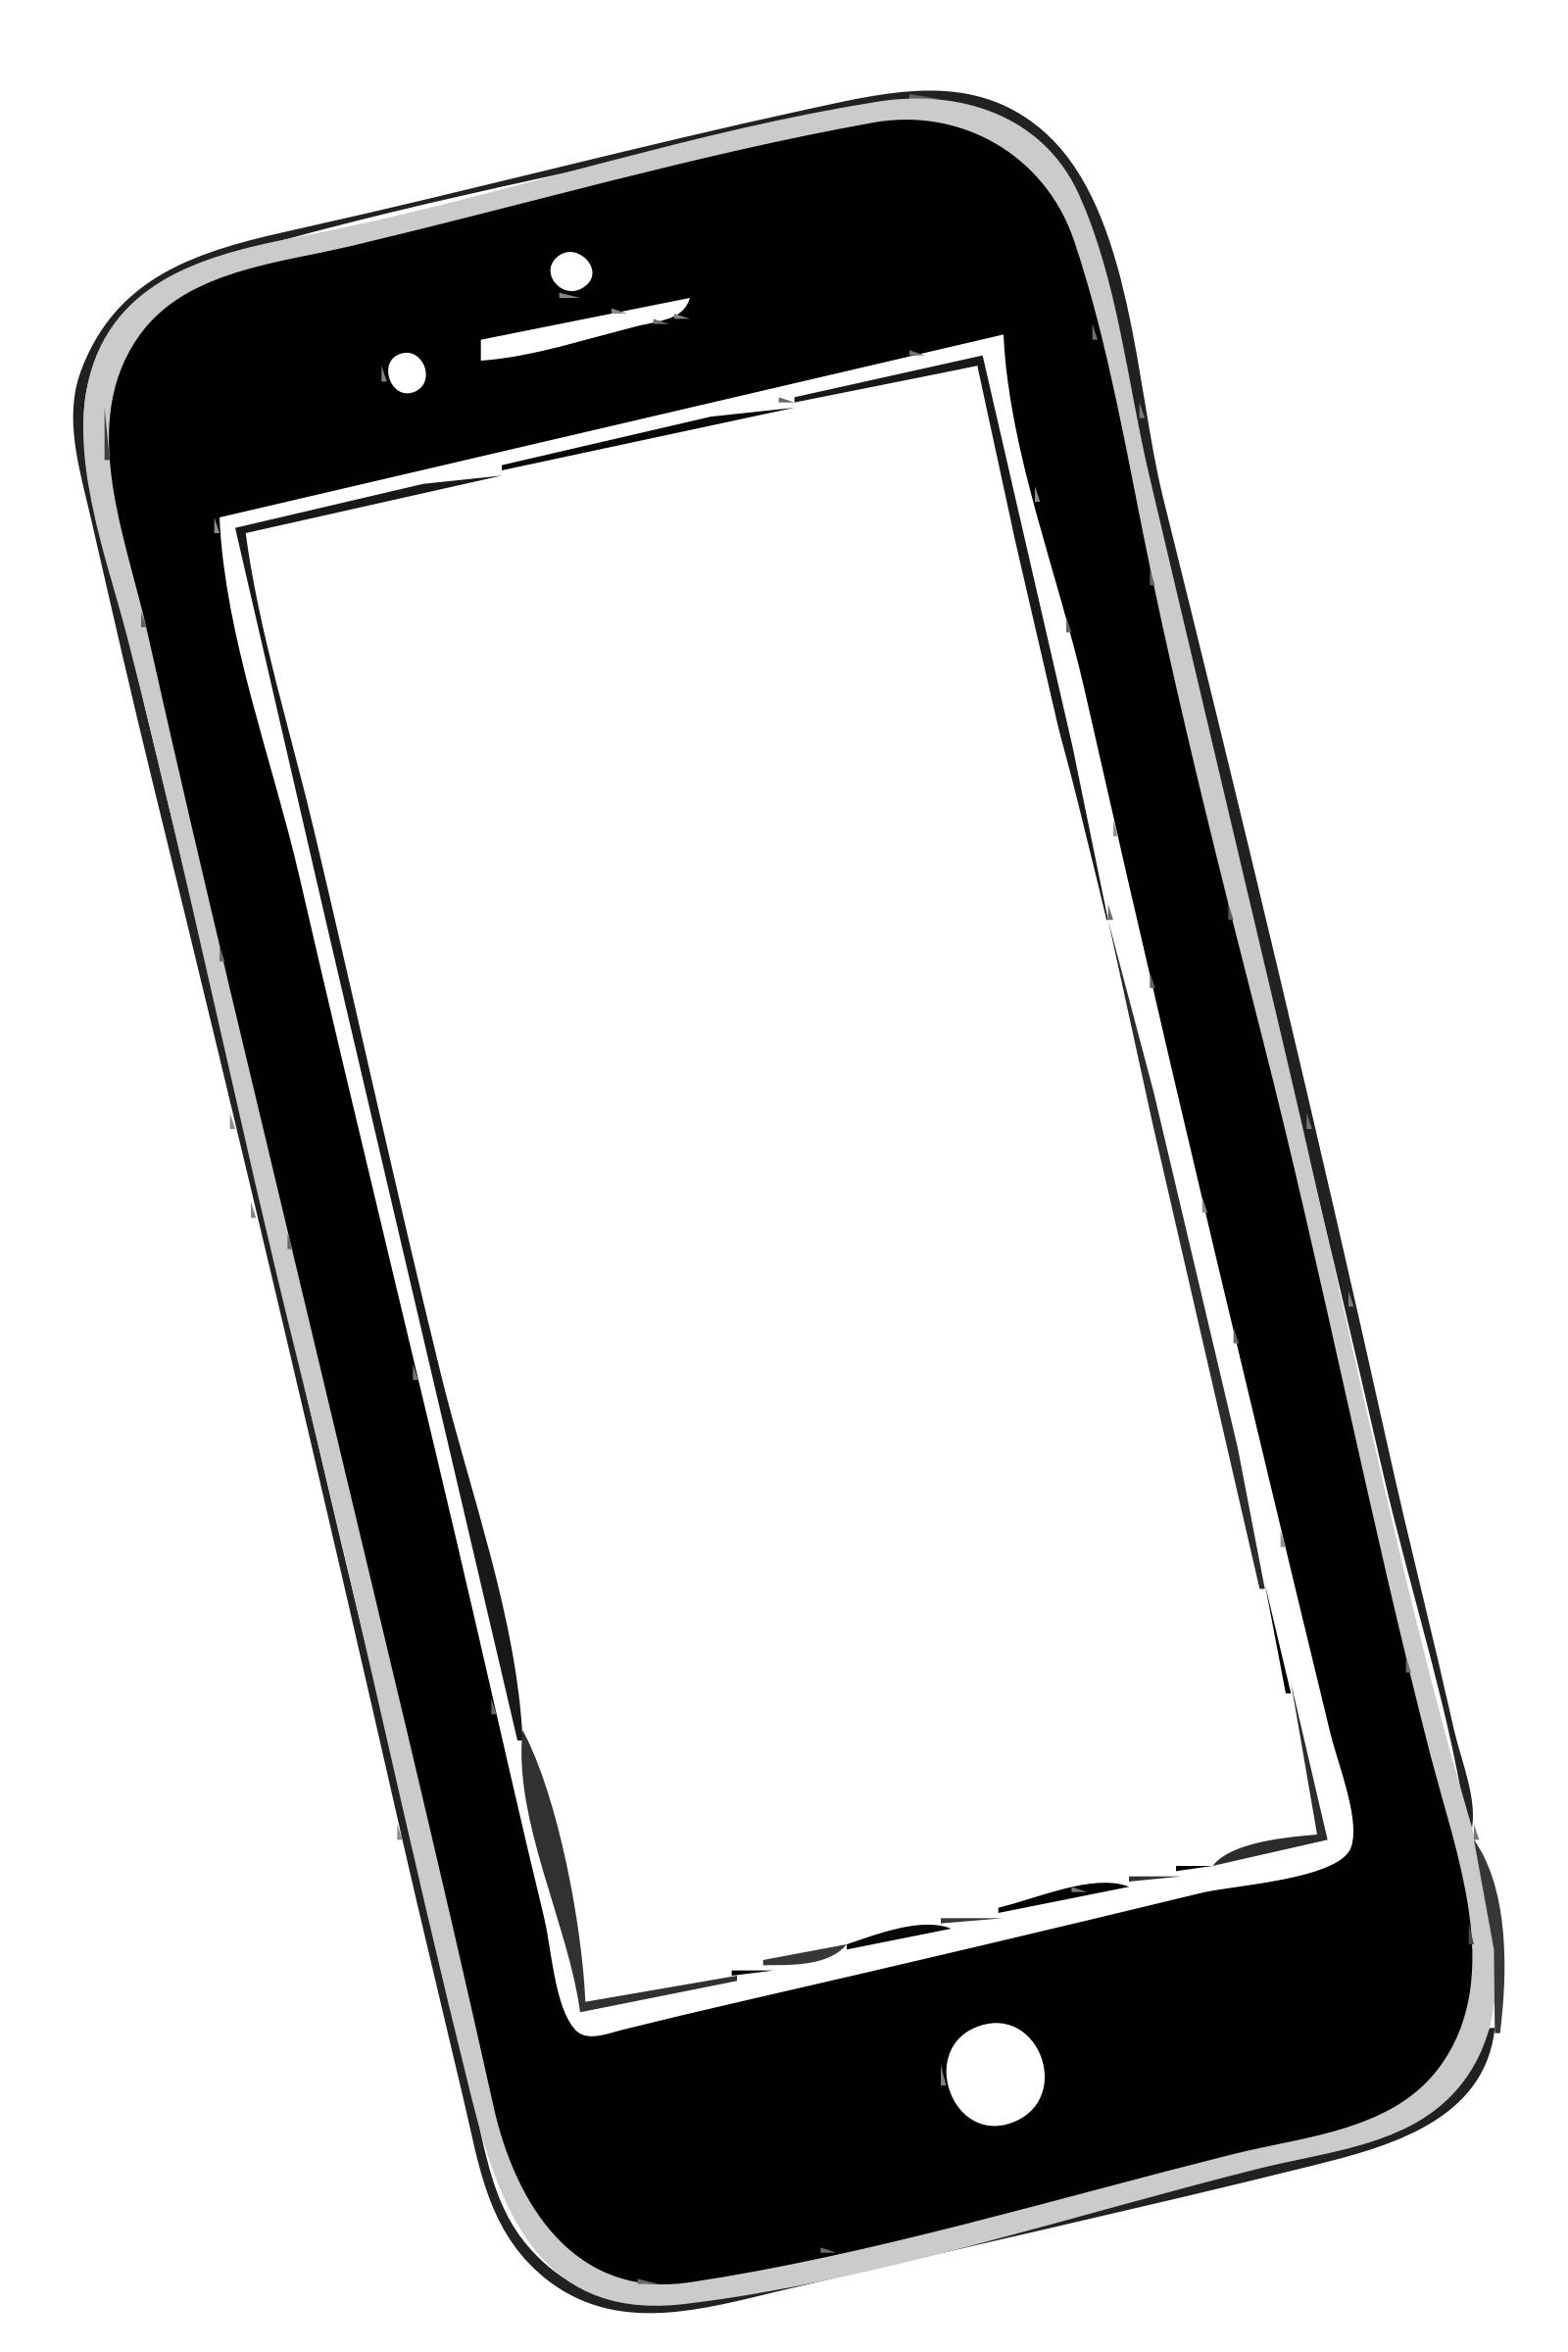 Mobile clipart. Sending i phone to